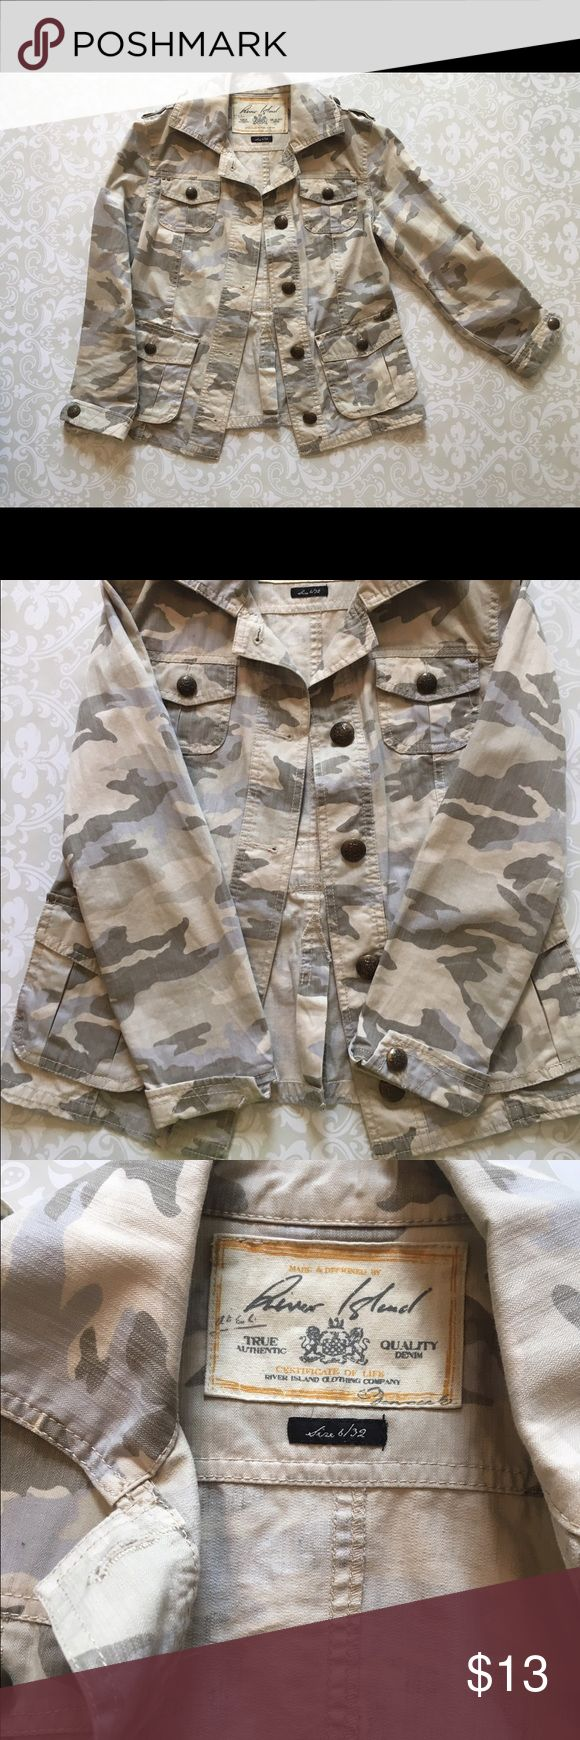 River Island Denim Jacket River Island Denim Jacket. UK size 6. Some buttons are missing. Overall great condition. River Island Jackets & Coats Jean Jackets